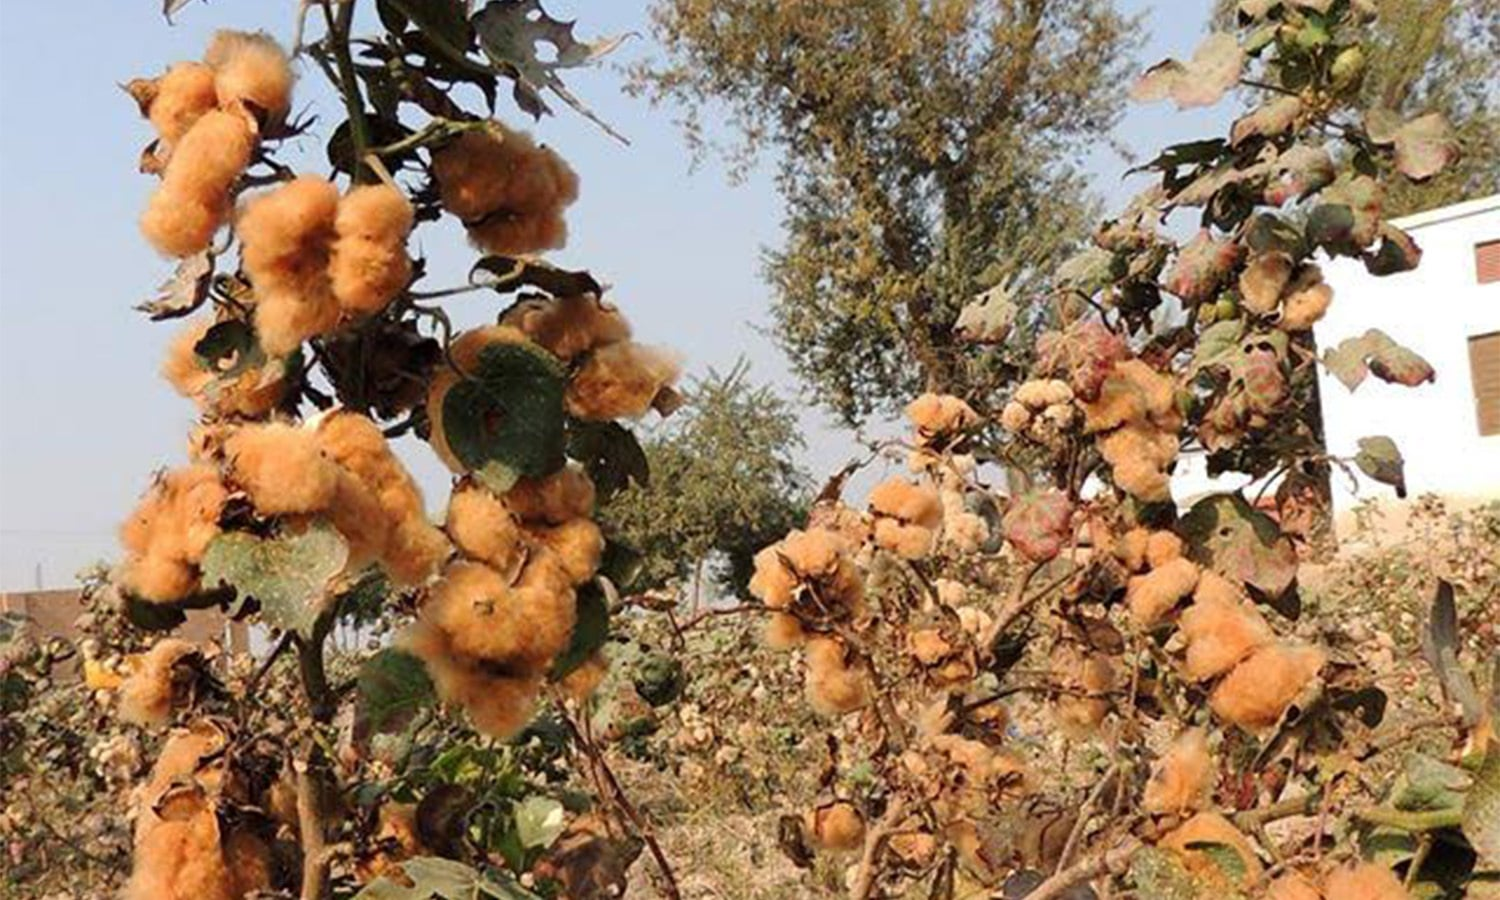 cotton industry of pakistan Imports are of cotton that is of higher quality in order to meet the textile industry's needs pakistan's cotton is pakistan's main industrial crop grown on.